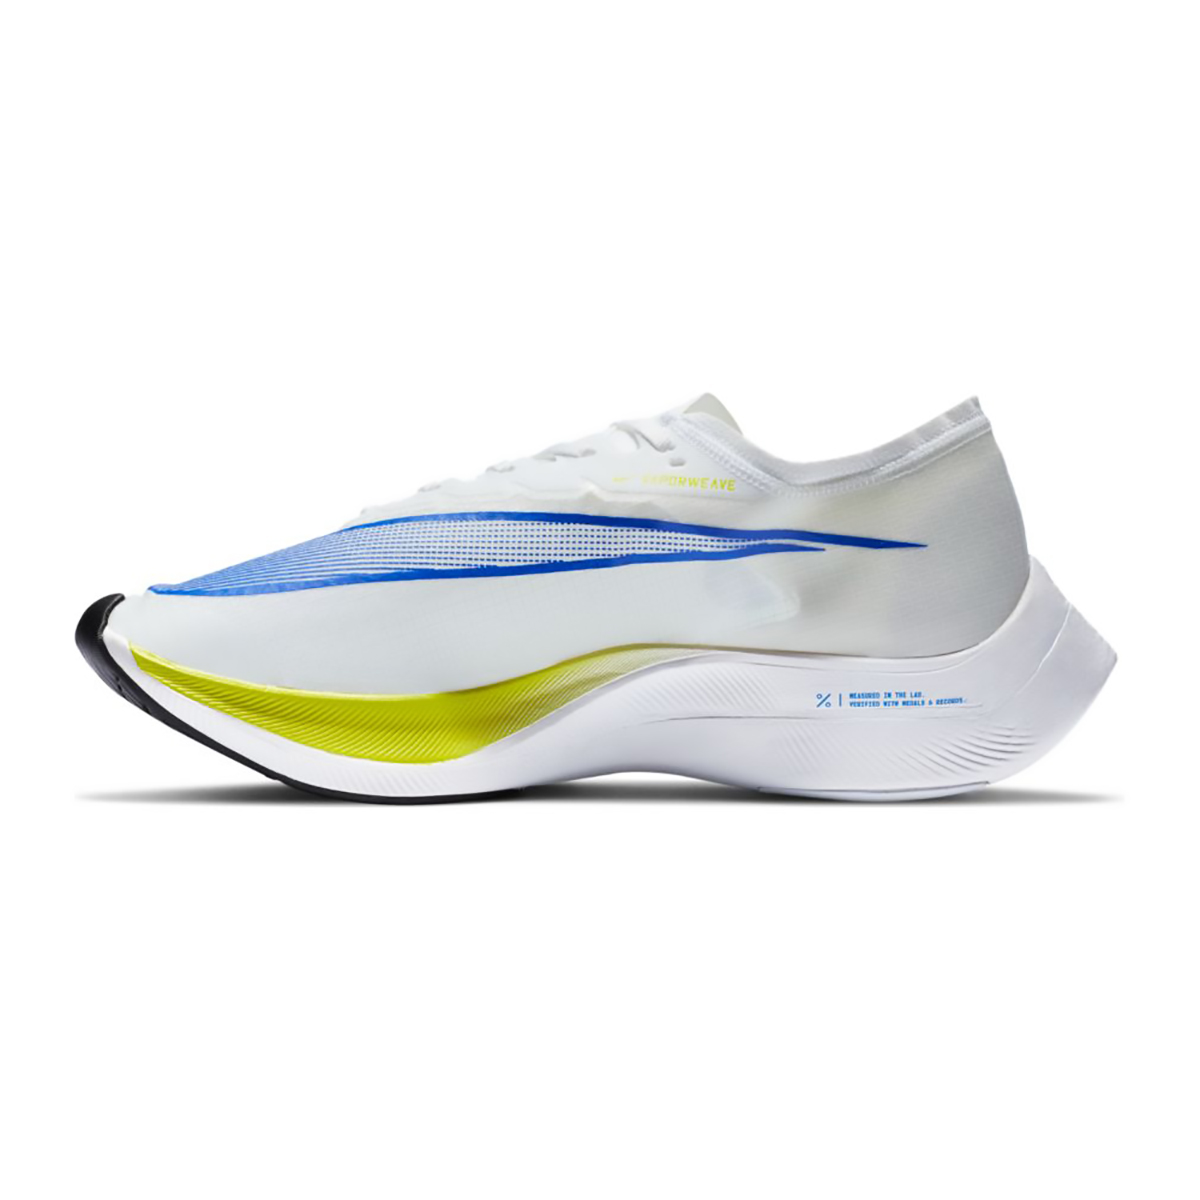 Nike ZoomX Vaporfly NEXT% Running Shoe - Color: White/Racer Blue/Cyber/Black - Size: M5/W6.5 - Width: Regular, White/Racer Blue/Cyber/Black, large, image 2